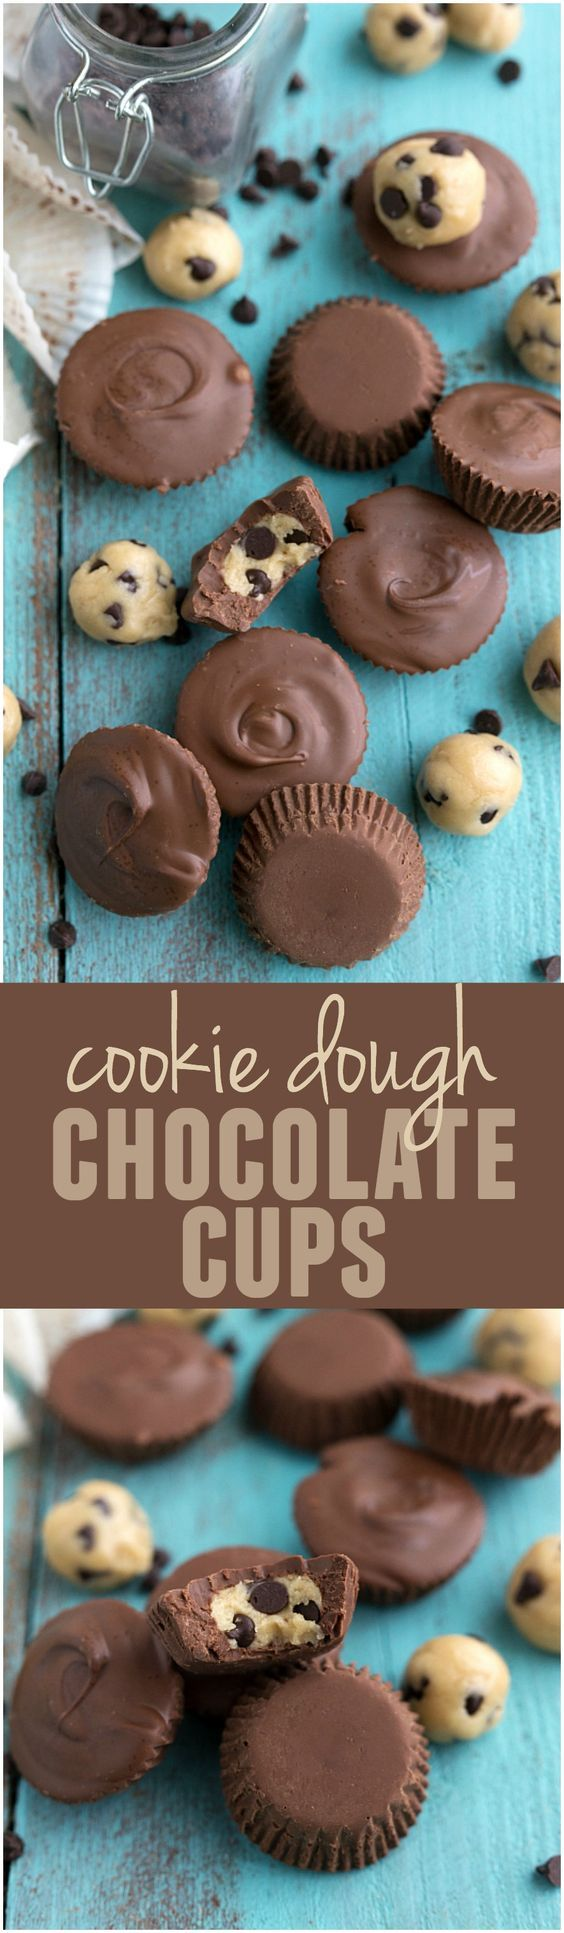 No-Bake Cookie Dough Chocolate Cups Recipe plus 24 more of the most pinned no-bake dessert recipes